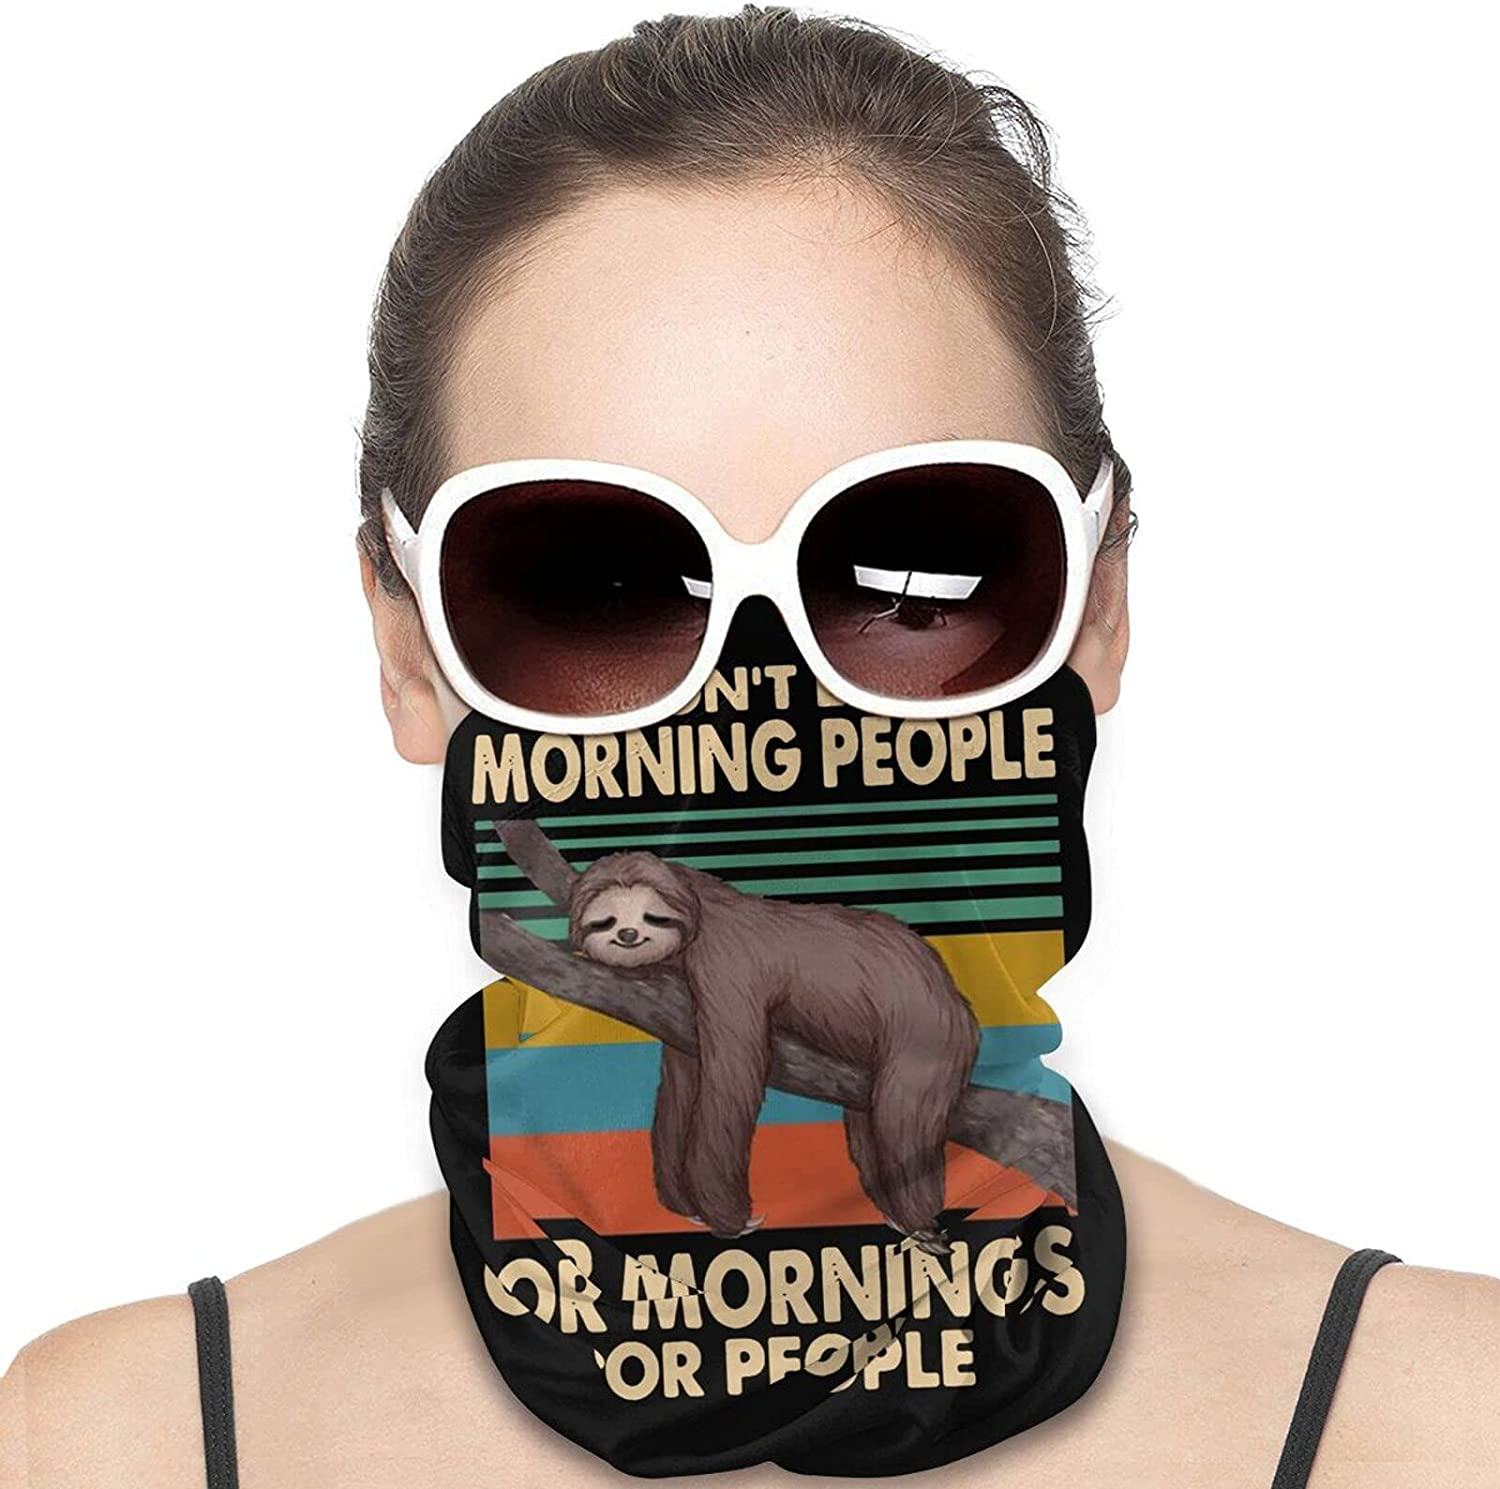 I Don't Like Morning People Round Neck Gaiter Bandnas Face Cover Uv Protection Prevent bask in Ice Scarf Headbands Perfect for Motorcycle Cycling Running Festival Raves Outdoors